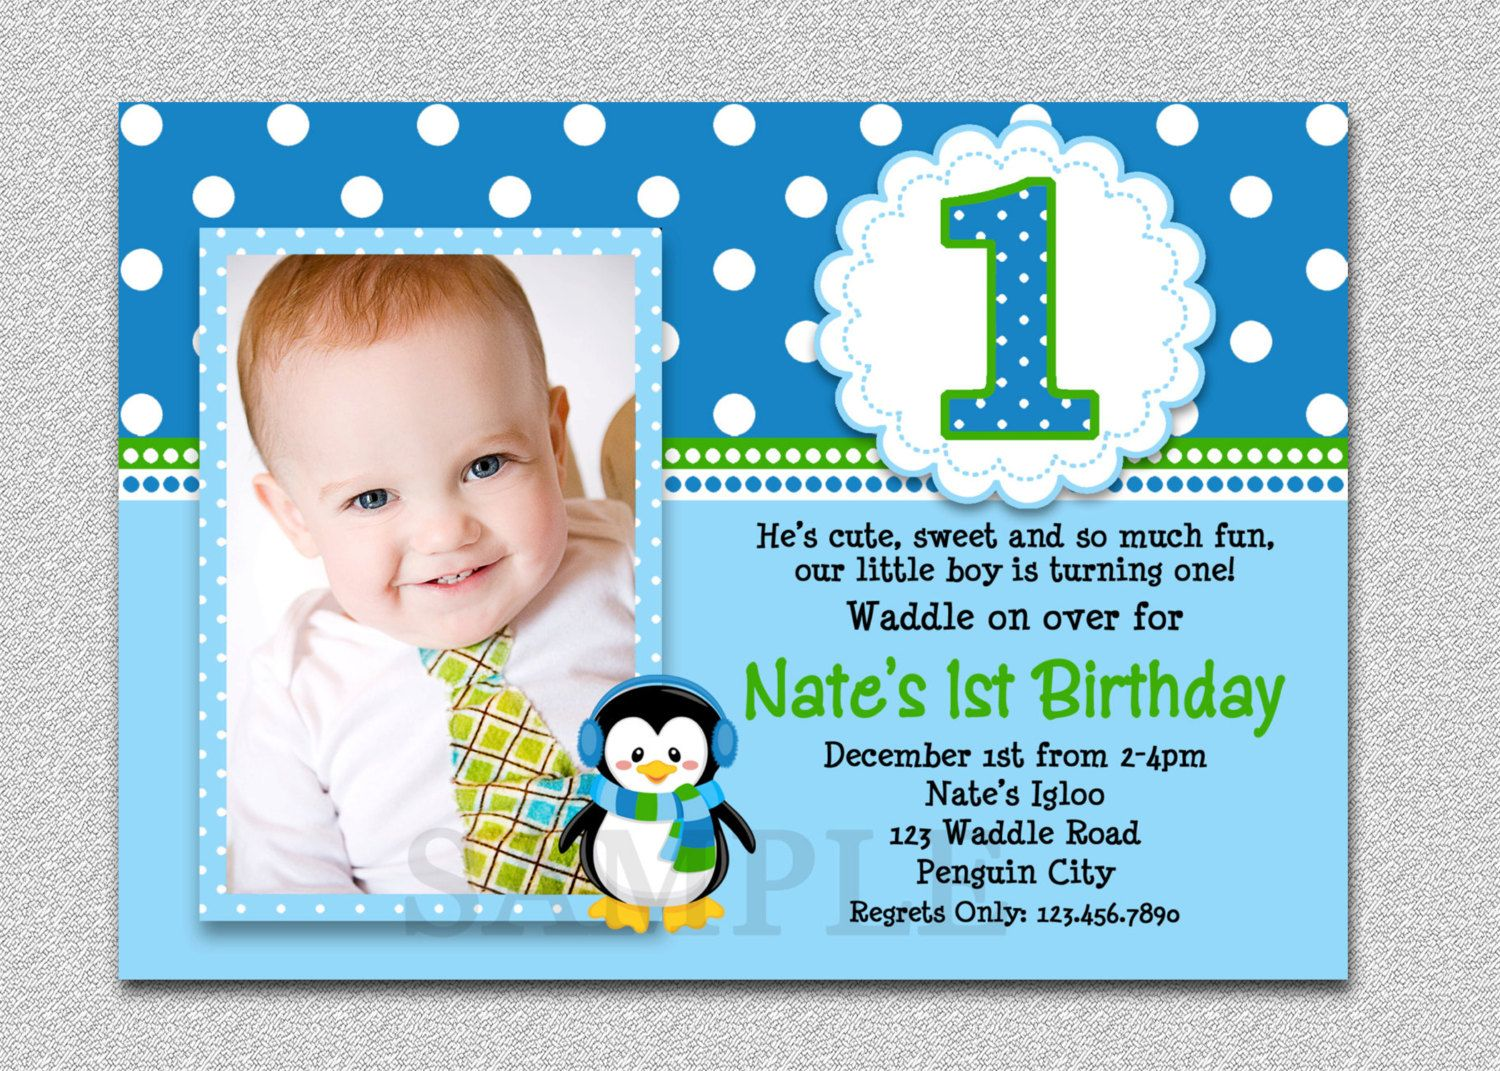 1st birthday invitations 21st bridal world wedding ideas and birthday invitation card for boy concept bossy baby boy invitation card with smiley baby photos design alongside blue polka dot frames and round tenplate filmwisefo Gallery